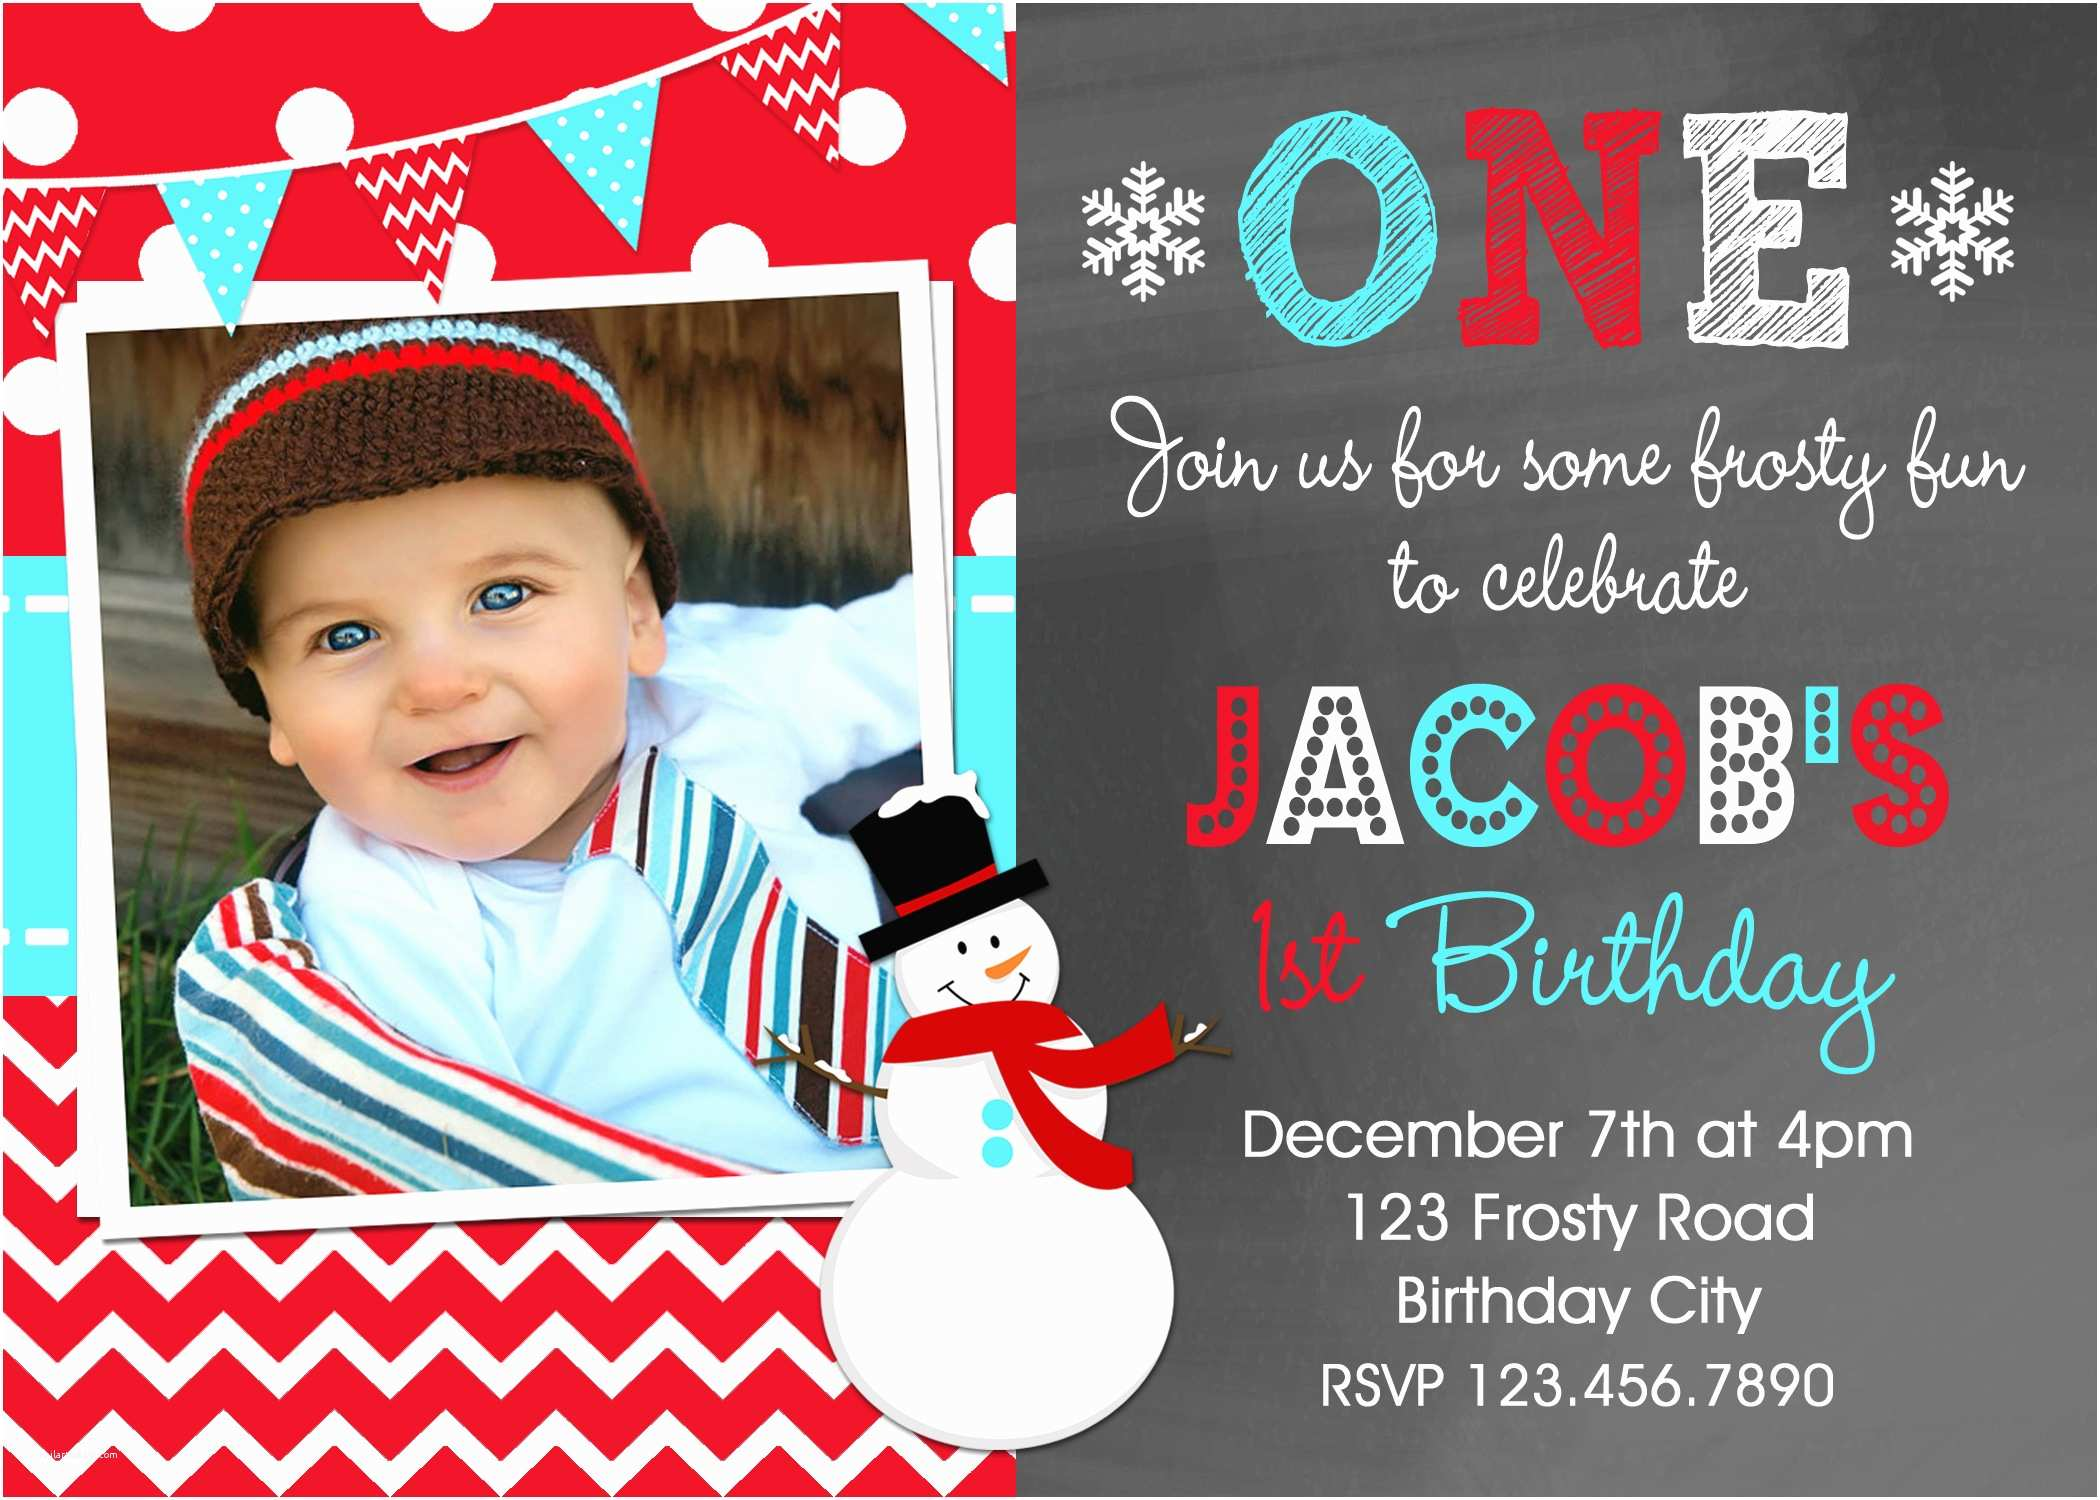 Boy Birthday Invitations Snowman Birthday Invitations Red Boys Winter Birthday